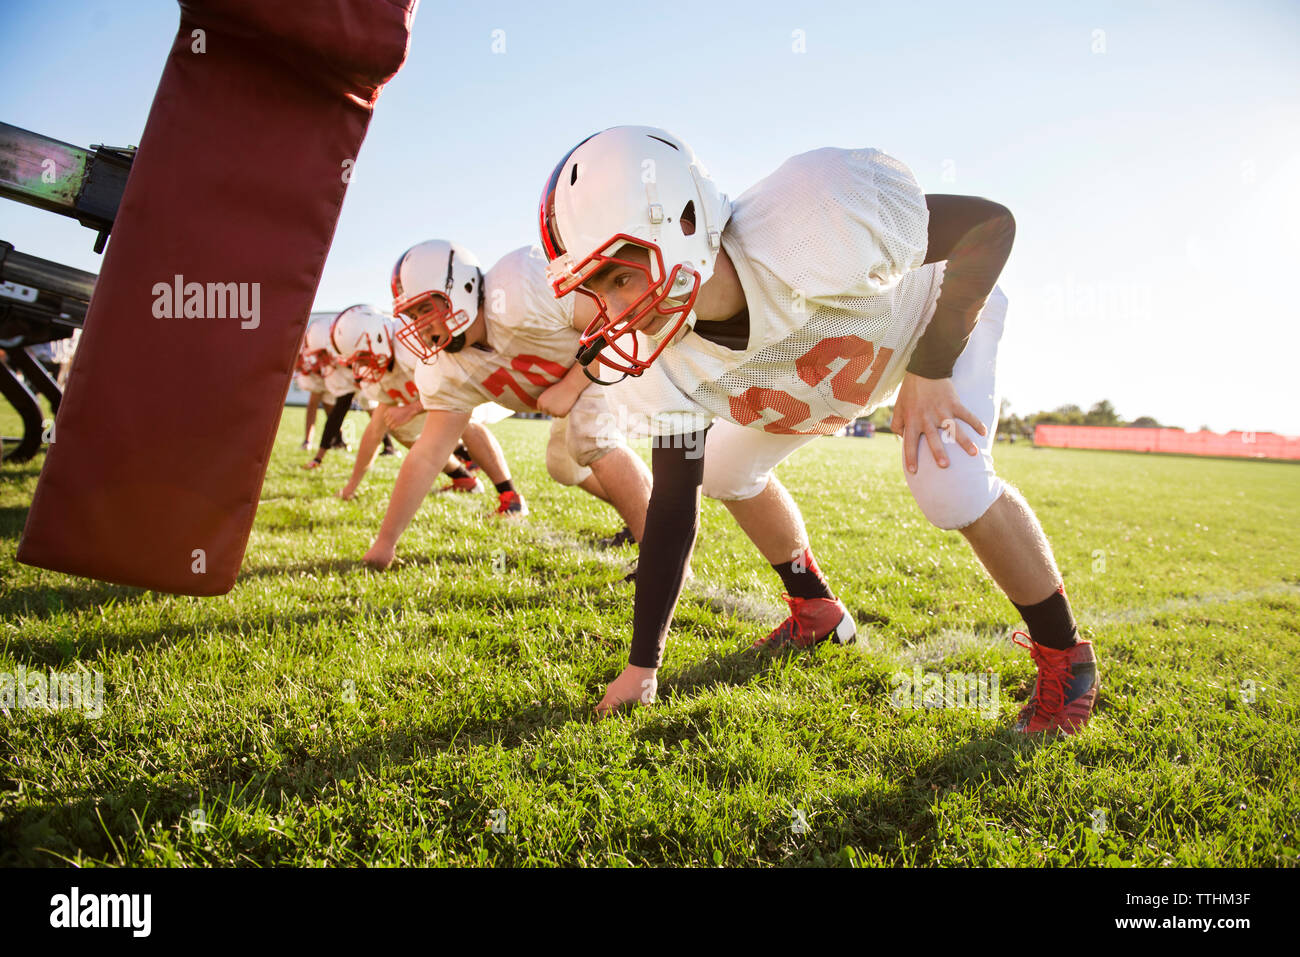 American football players bending by sled at field - Stock Image